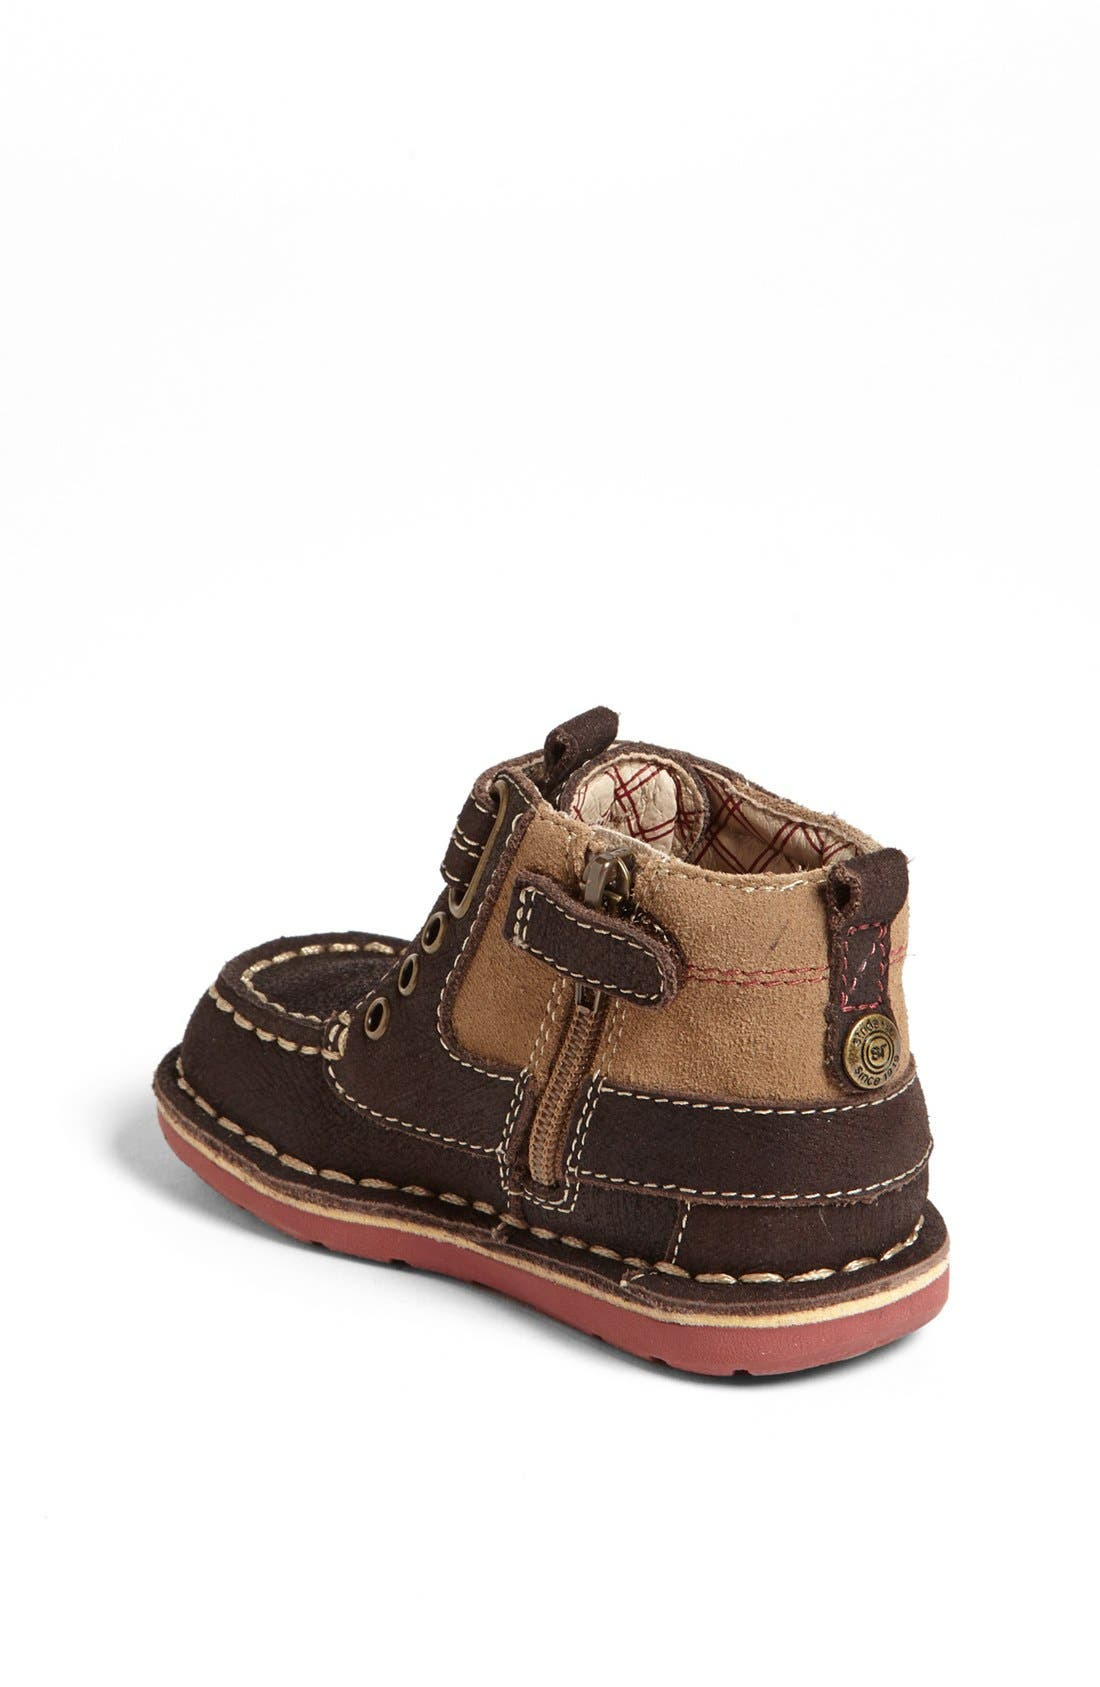 Alternate Image 2  - Stride Rite 'Medallion Collection - Maxwell' Boot (Baby, Walker & Toddler)